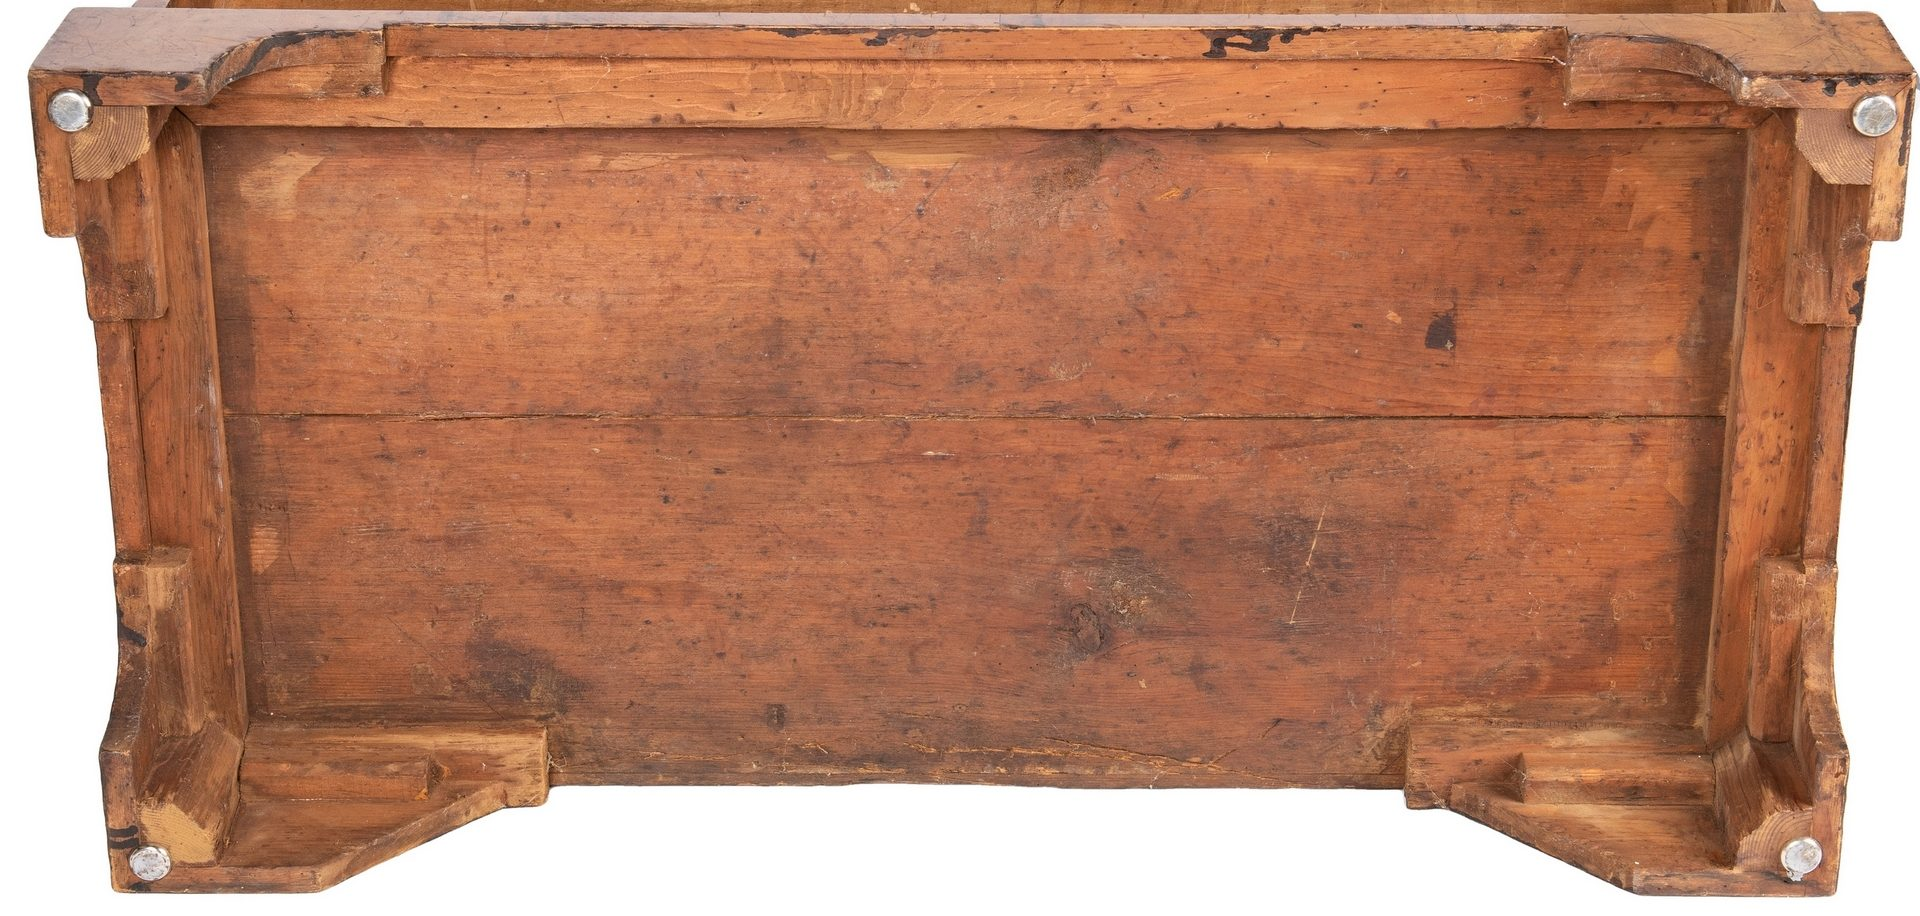 Lot 80: English Burlwood Chest of Drawers